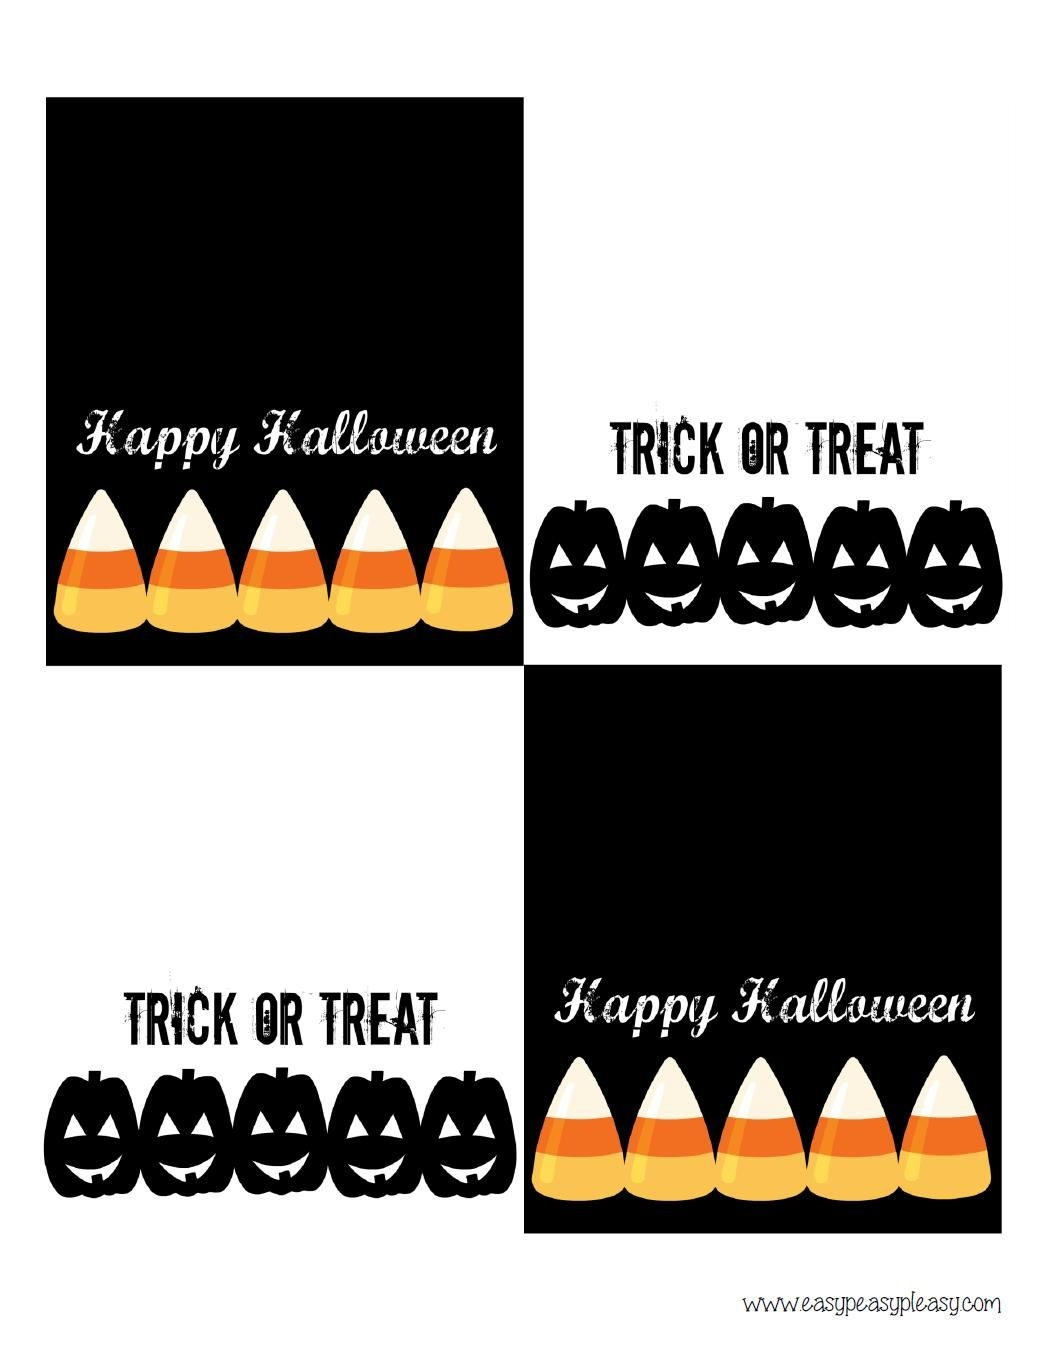 Free Printable Halloween Treat Bag Toppers | Halloween Printables 4 - Free Printable Trick Or Treat Bags